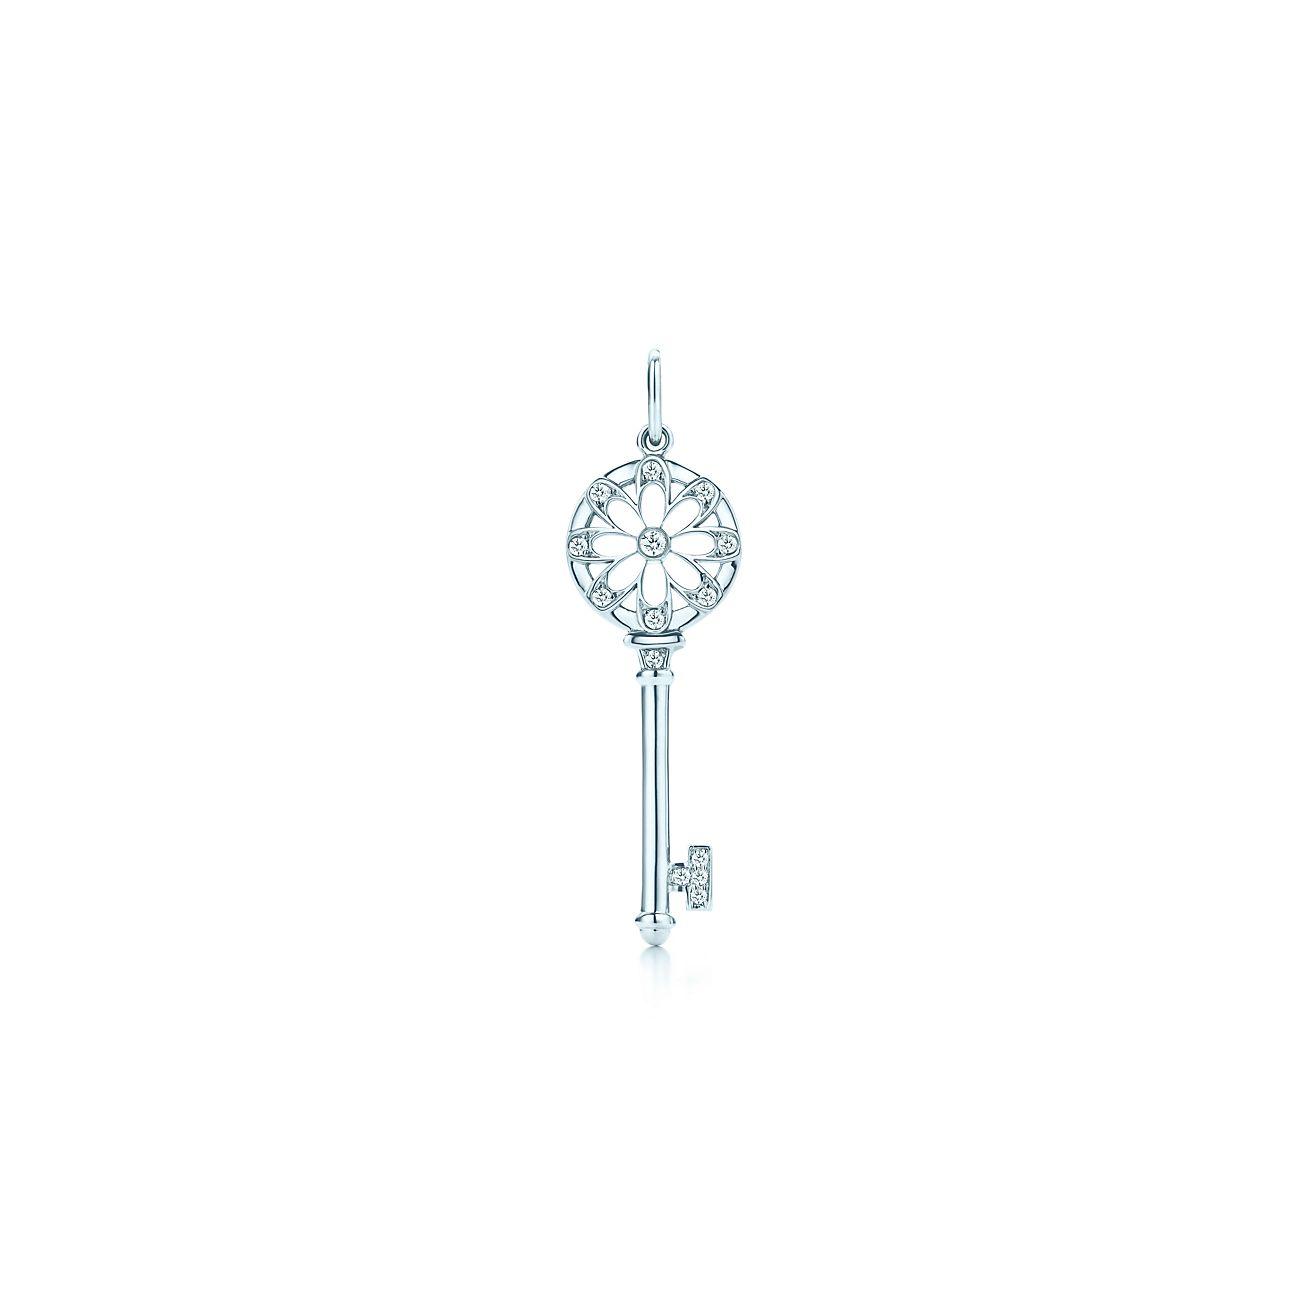 Tiffany keys floral key pendant in 18k white gold with diamonds tiffany keysfloral key pendant aloadofball Image collections